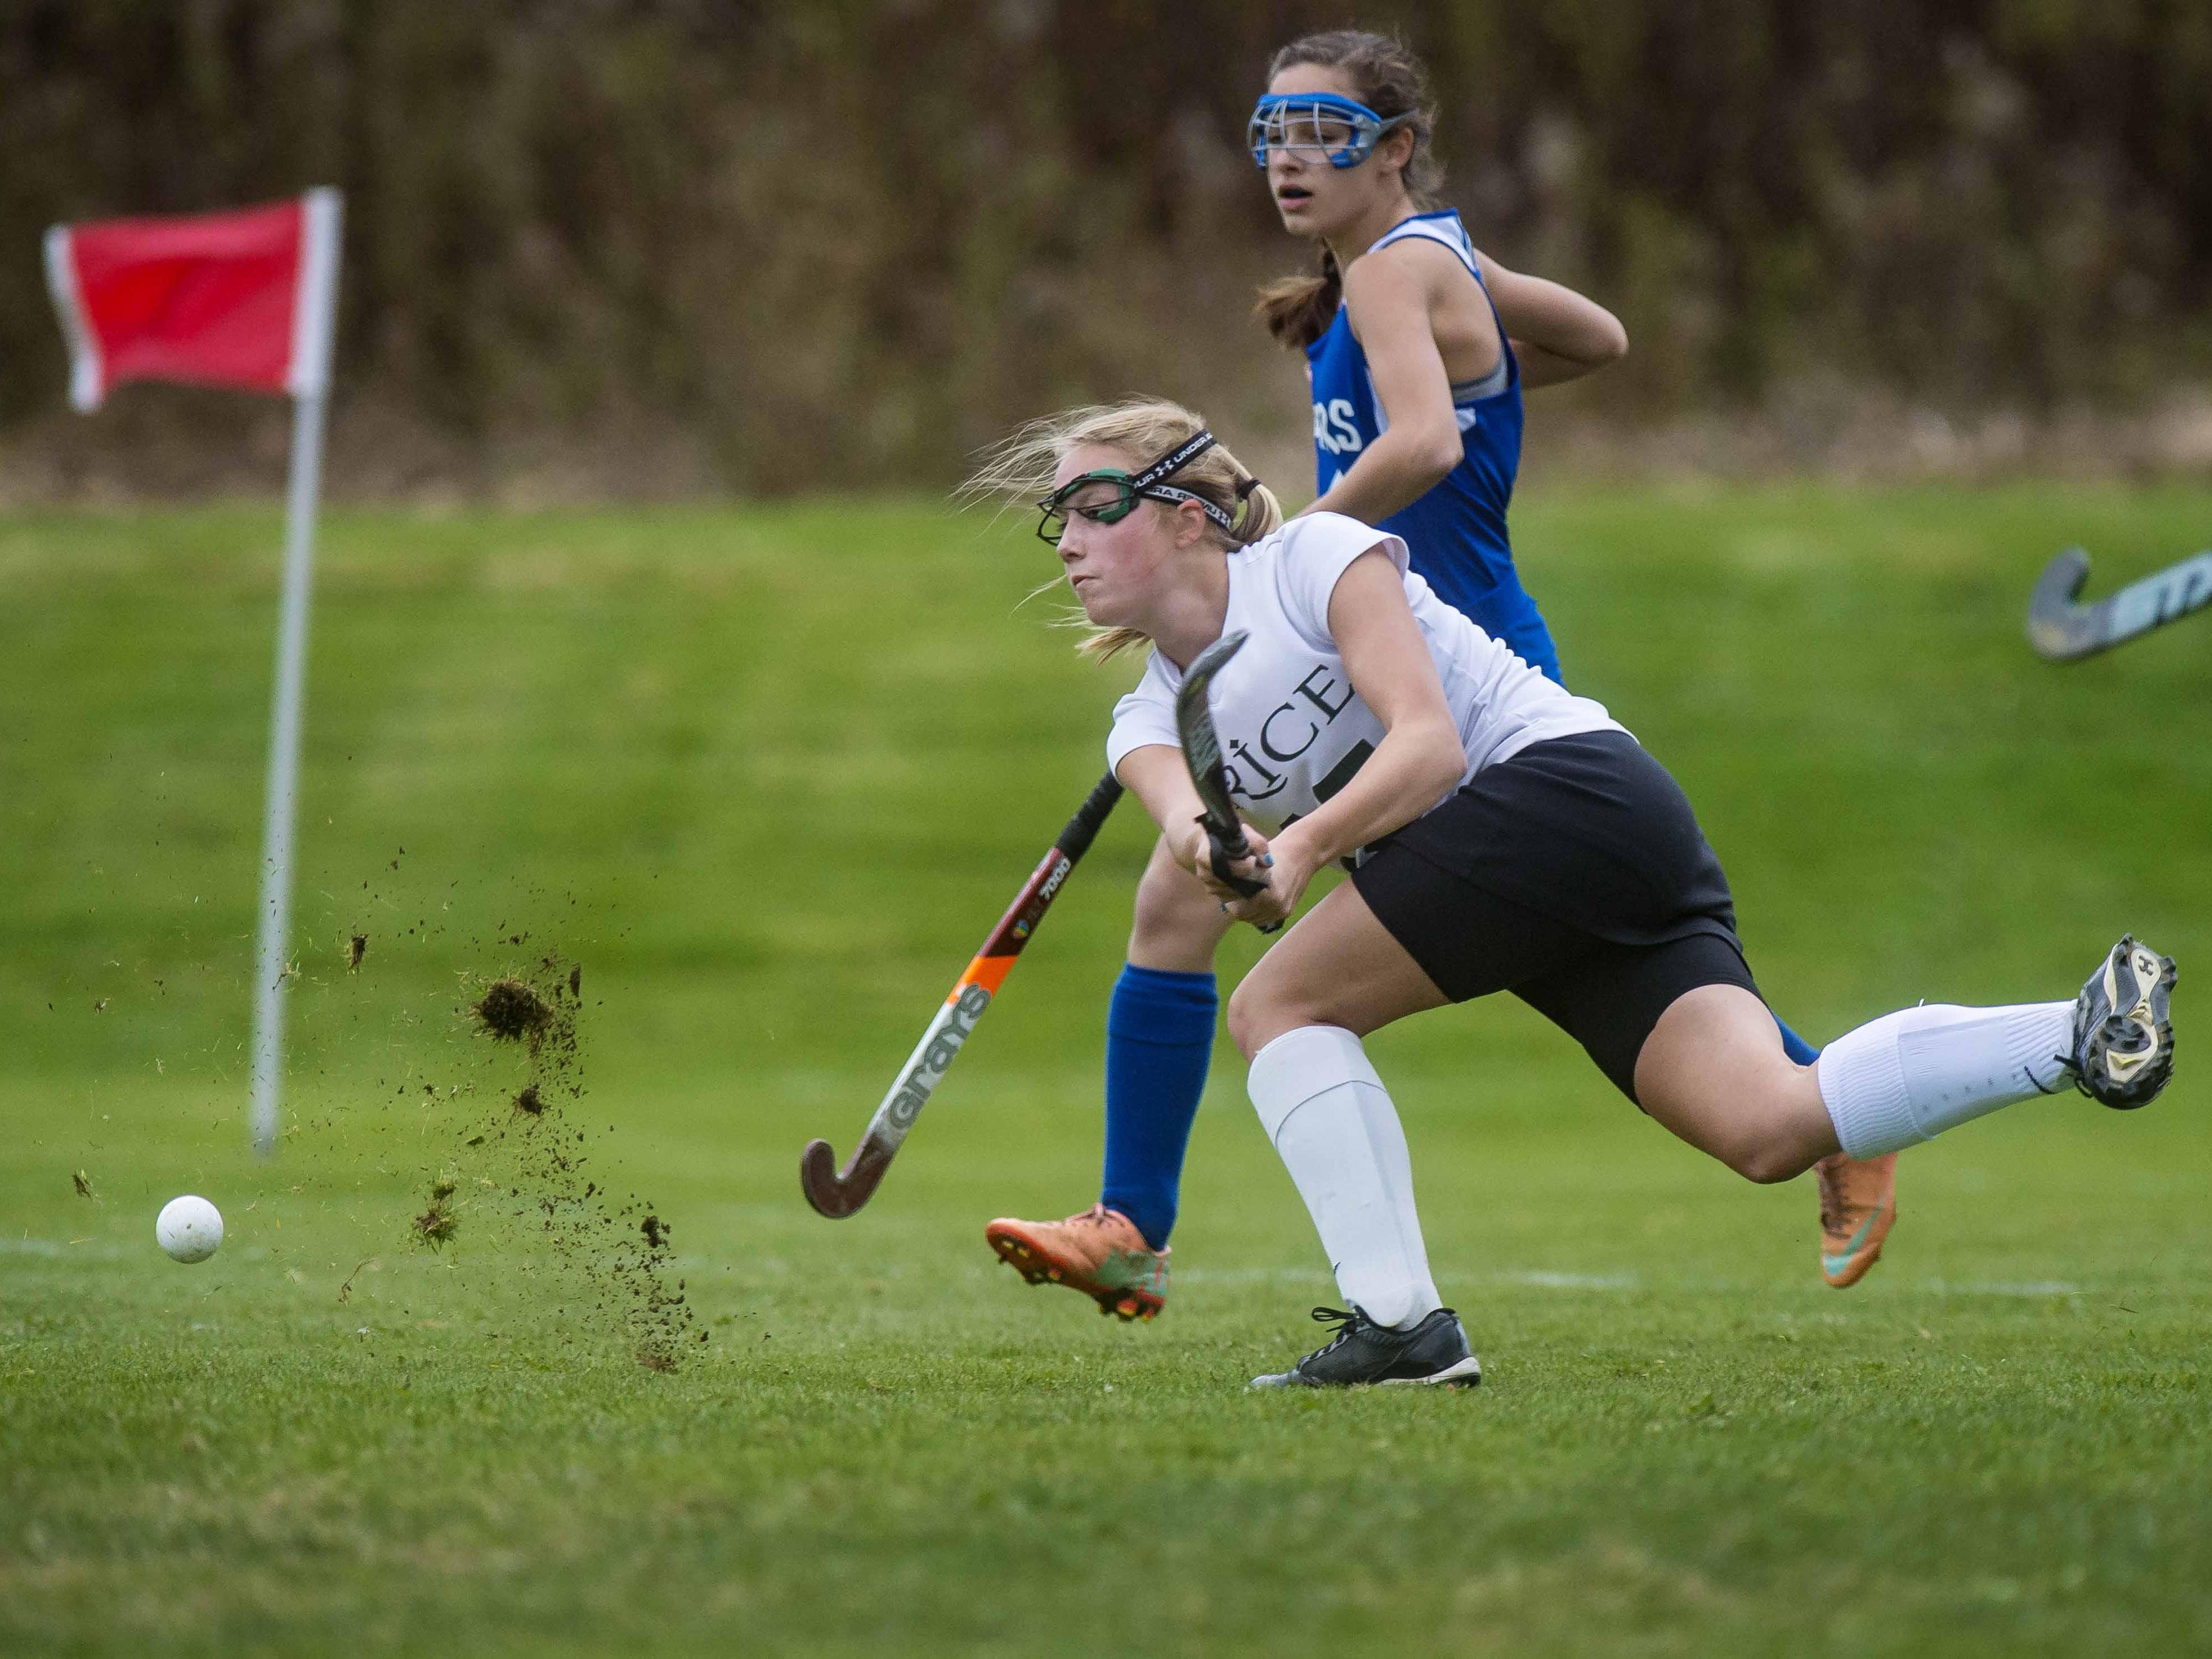 Rice's Sierra Combs fires a shot against Colchester in Essex Junction on Tuesday.